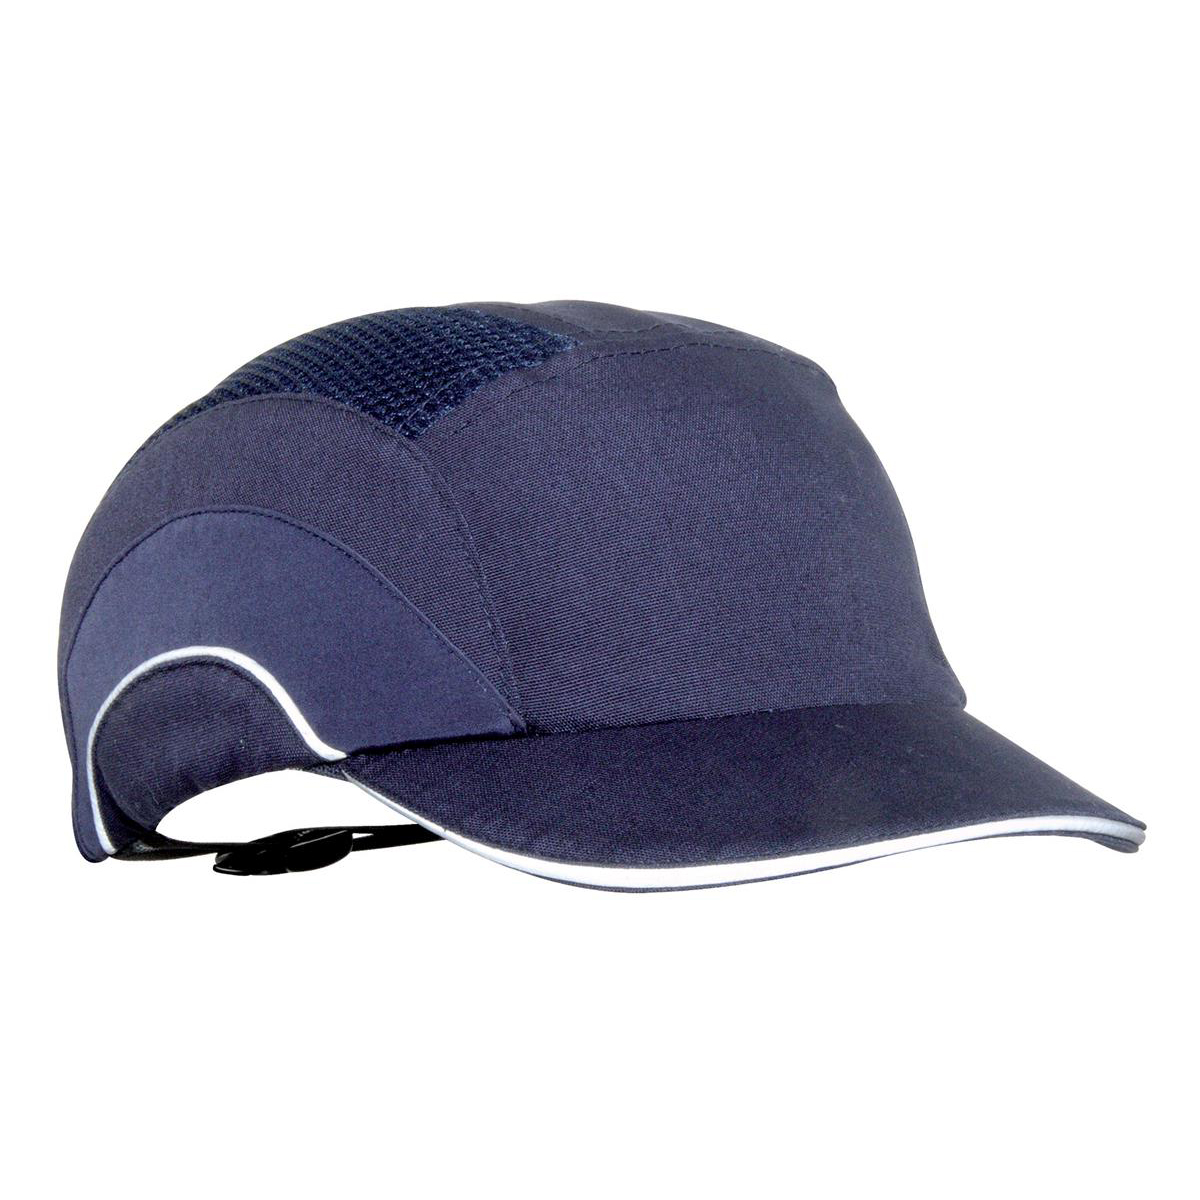 JSP Hard Cap A1 Plus Ventilated Adjustable with Short Peak 50mm Navy Ref ABS000-002-100